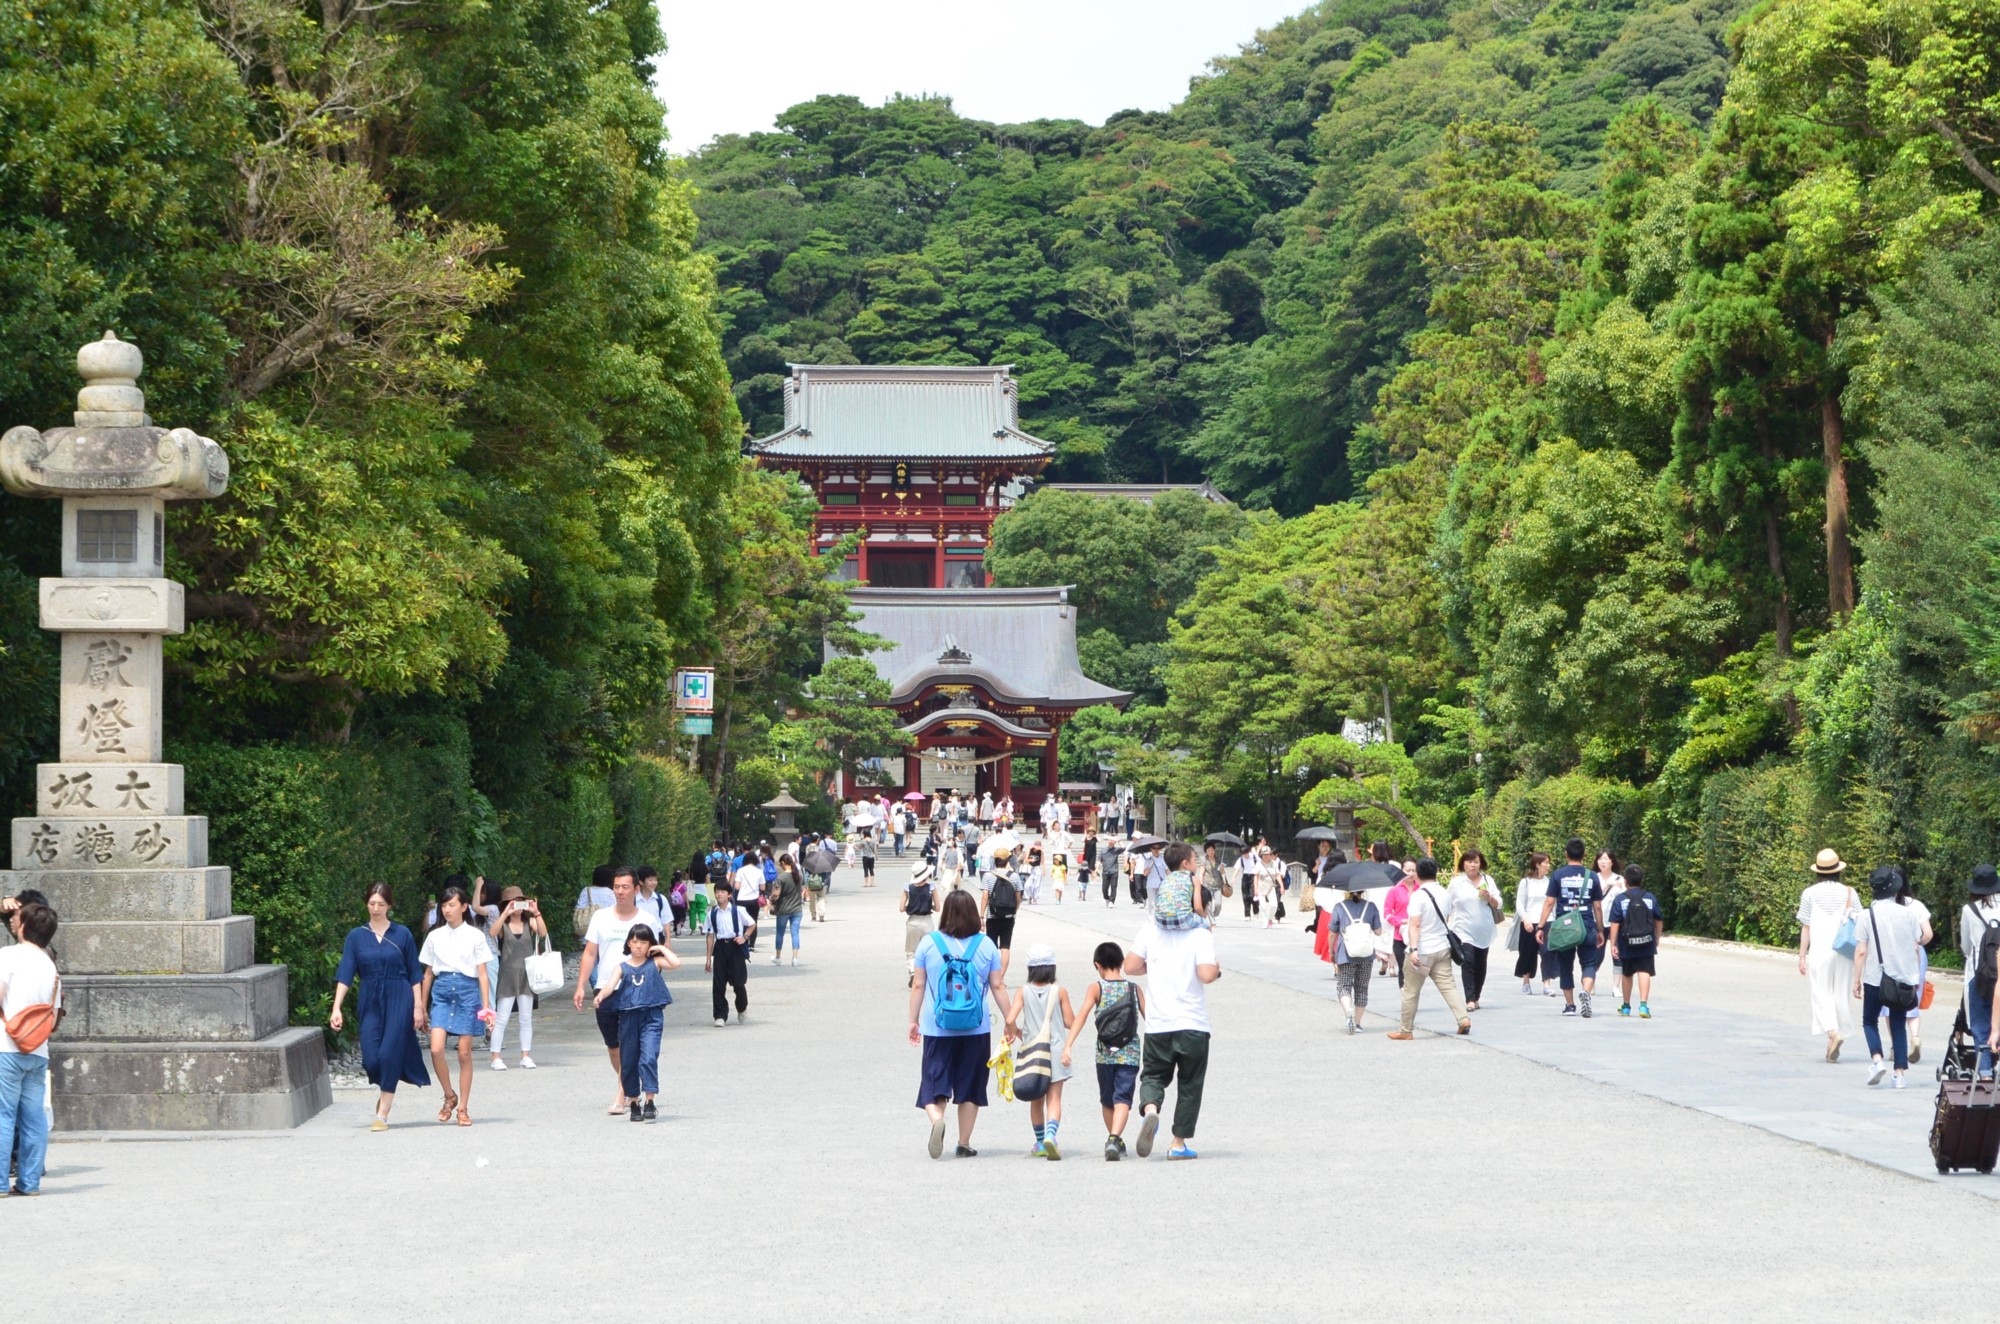 """The center city of Japan in medieval age, Kamakura is a historical town in  Kanagawa prefecture which is known as """" the Kyoto of Kanto region""""."""